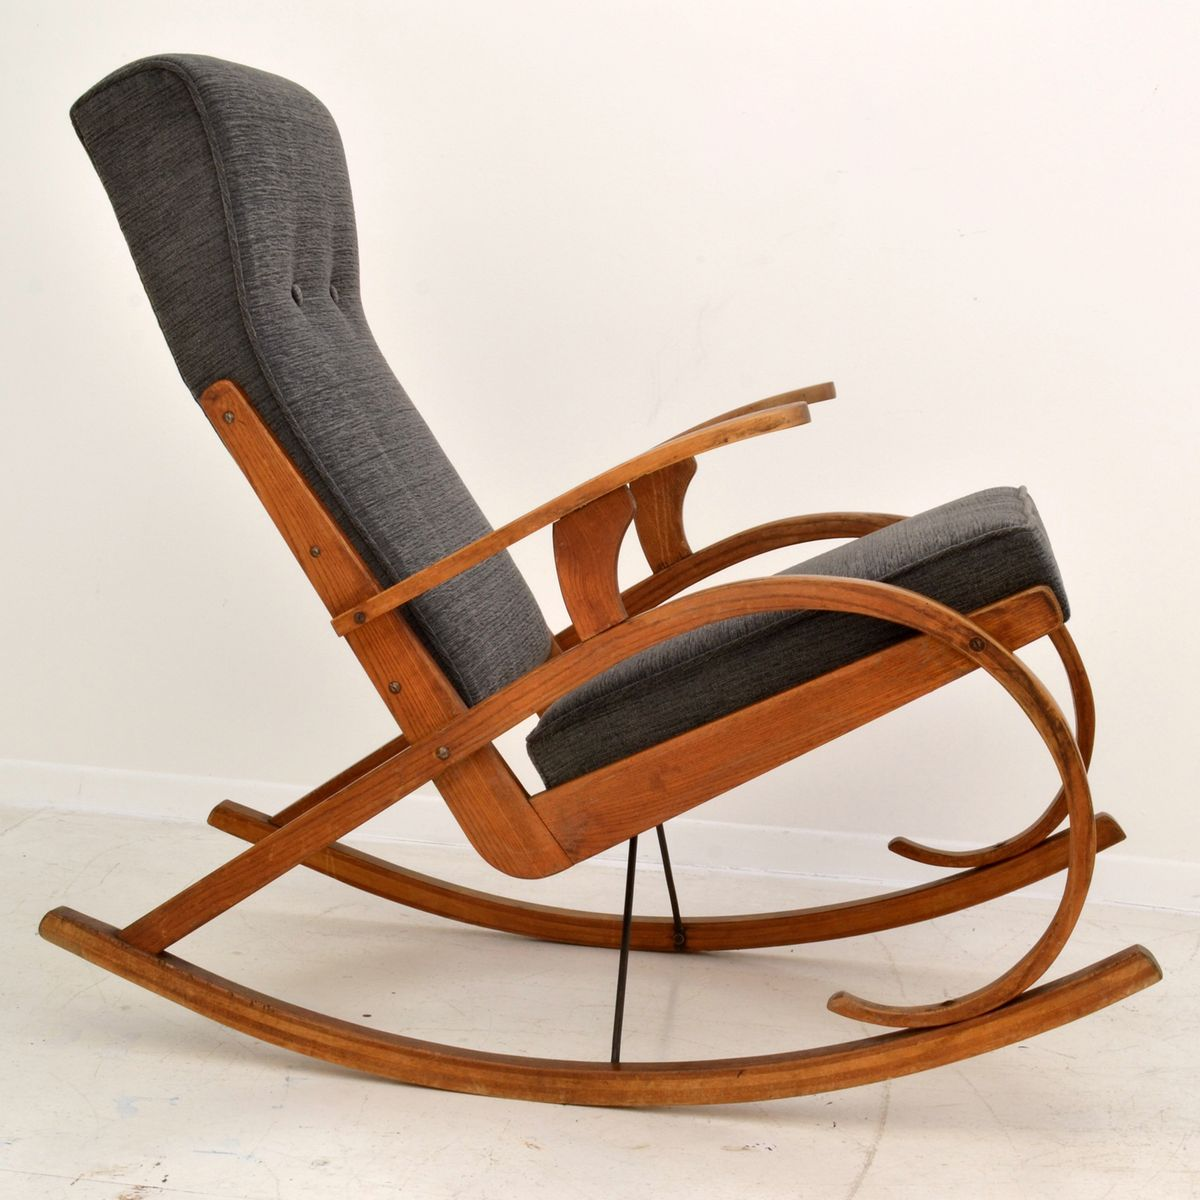 czech modernist rocking chair in bentwood 1930s for sale at pamono. Black Bedroom Furniture Sets. Home Design Ideas